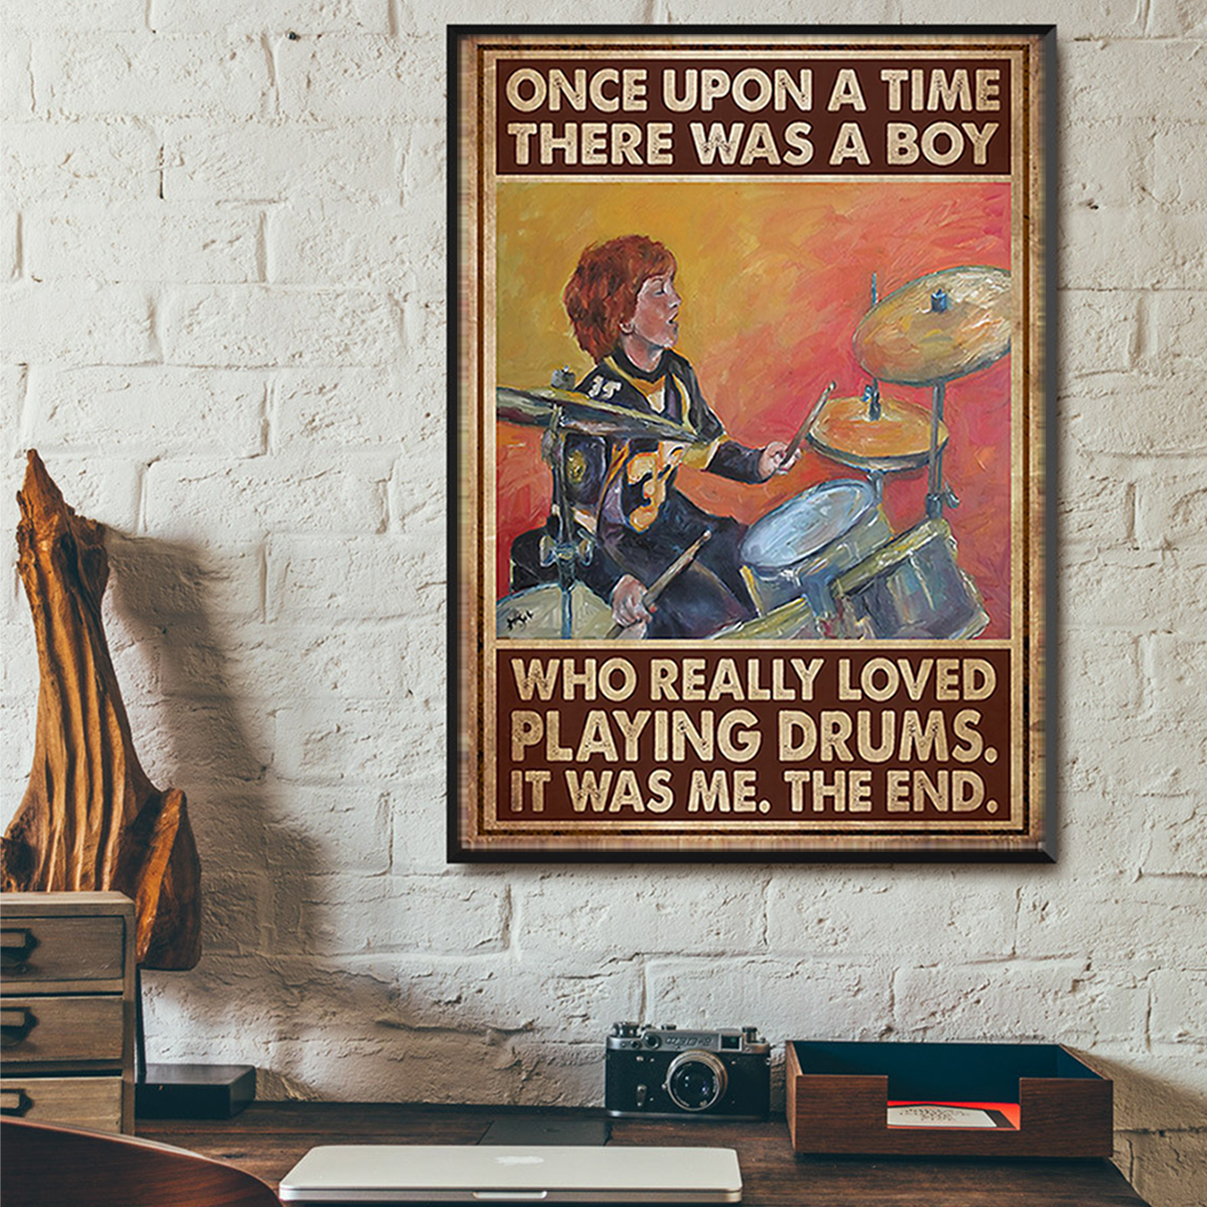 Once upon a time there was a boy who really loved playing drums poster A2